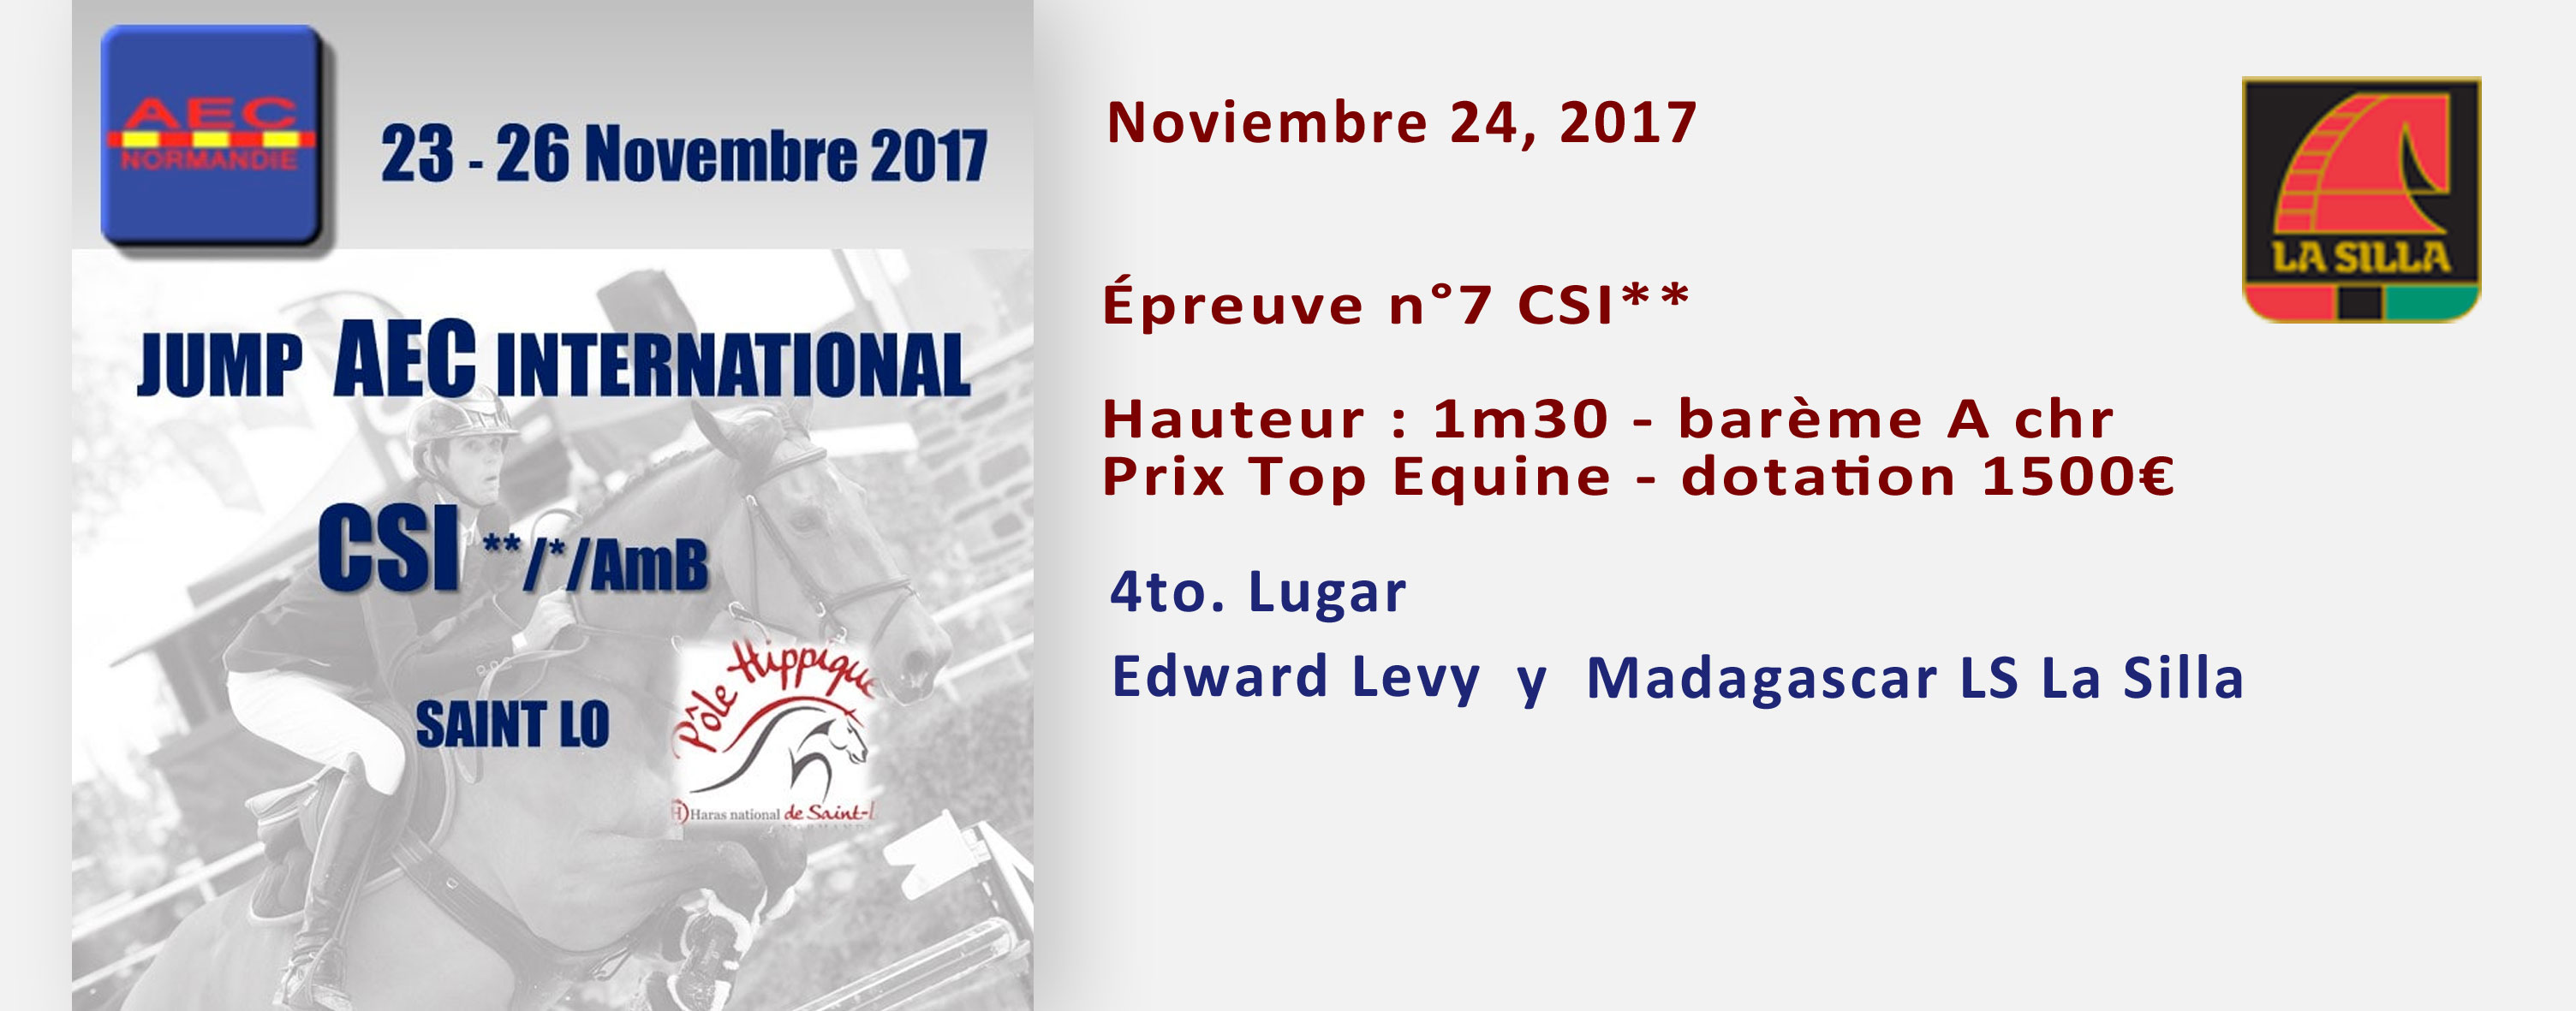 Saint-LO-NOv-2017-NEWS